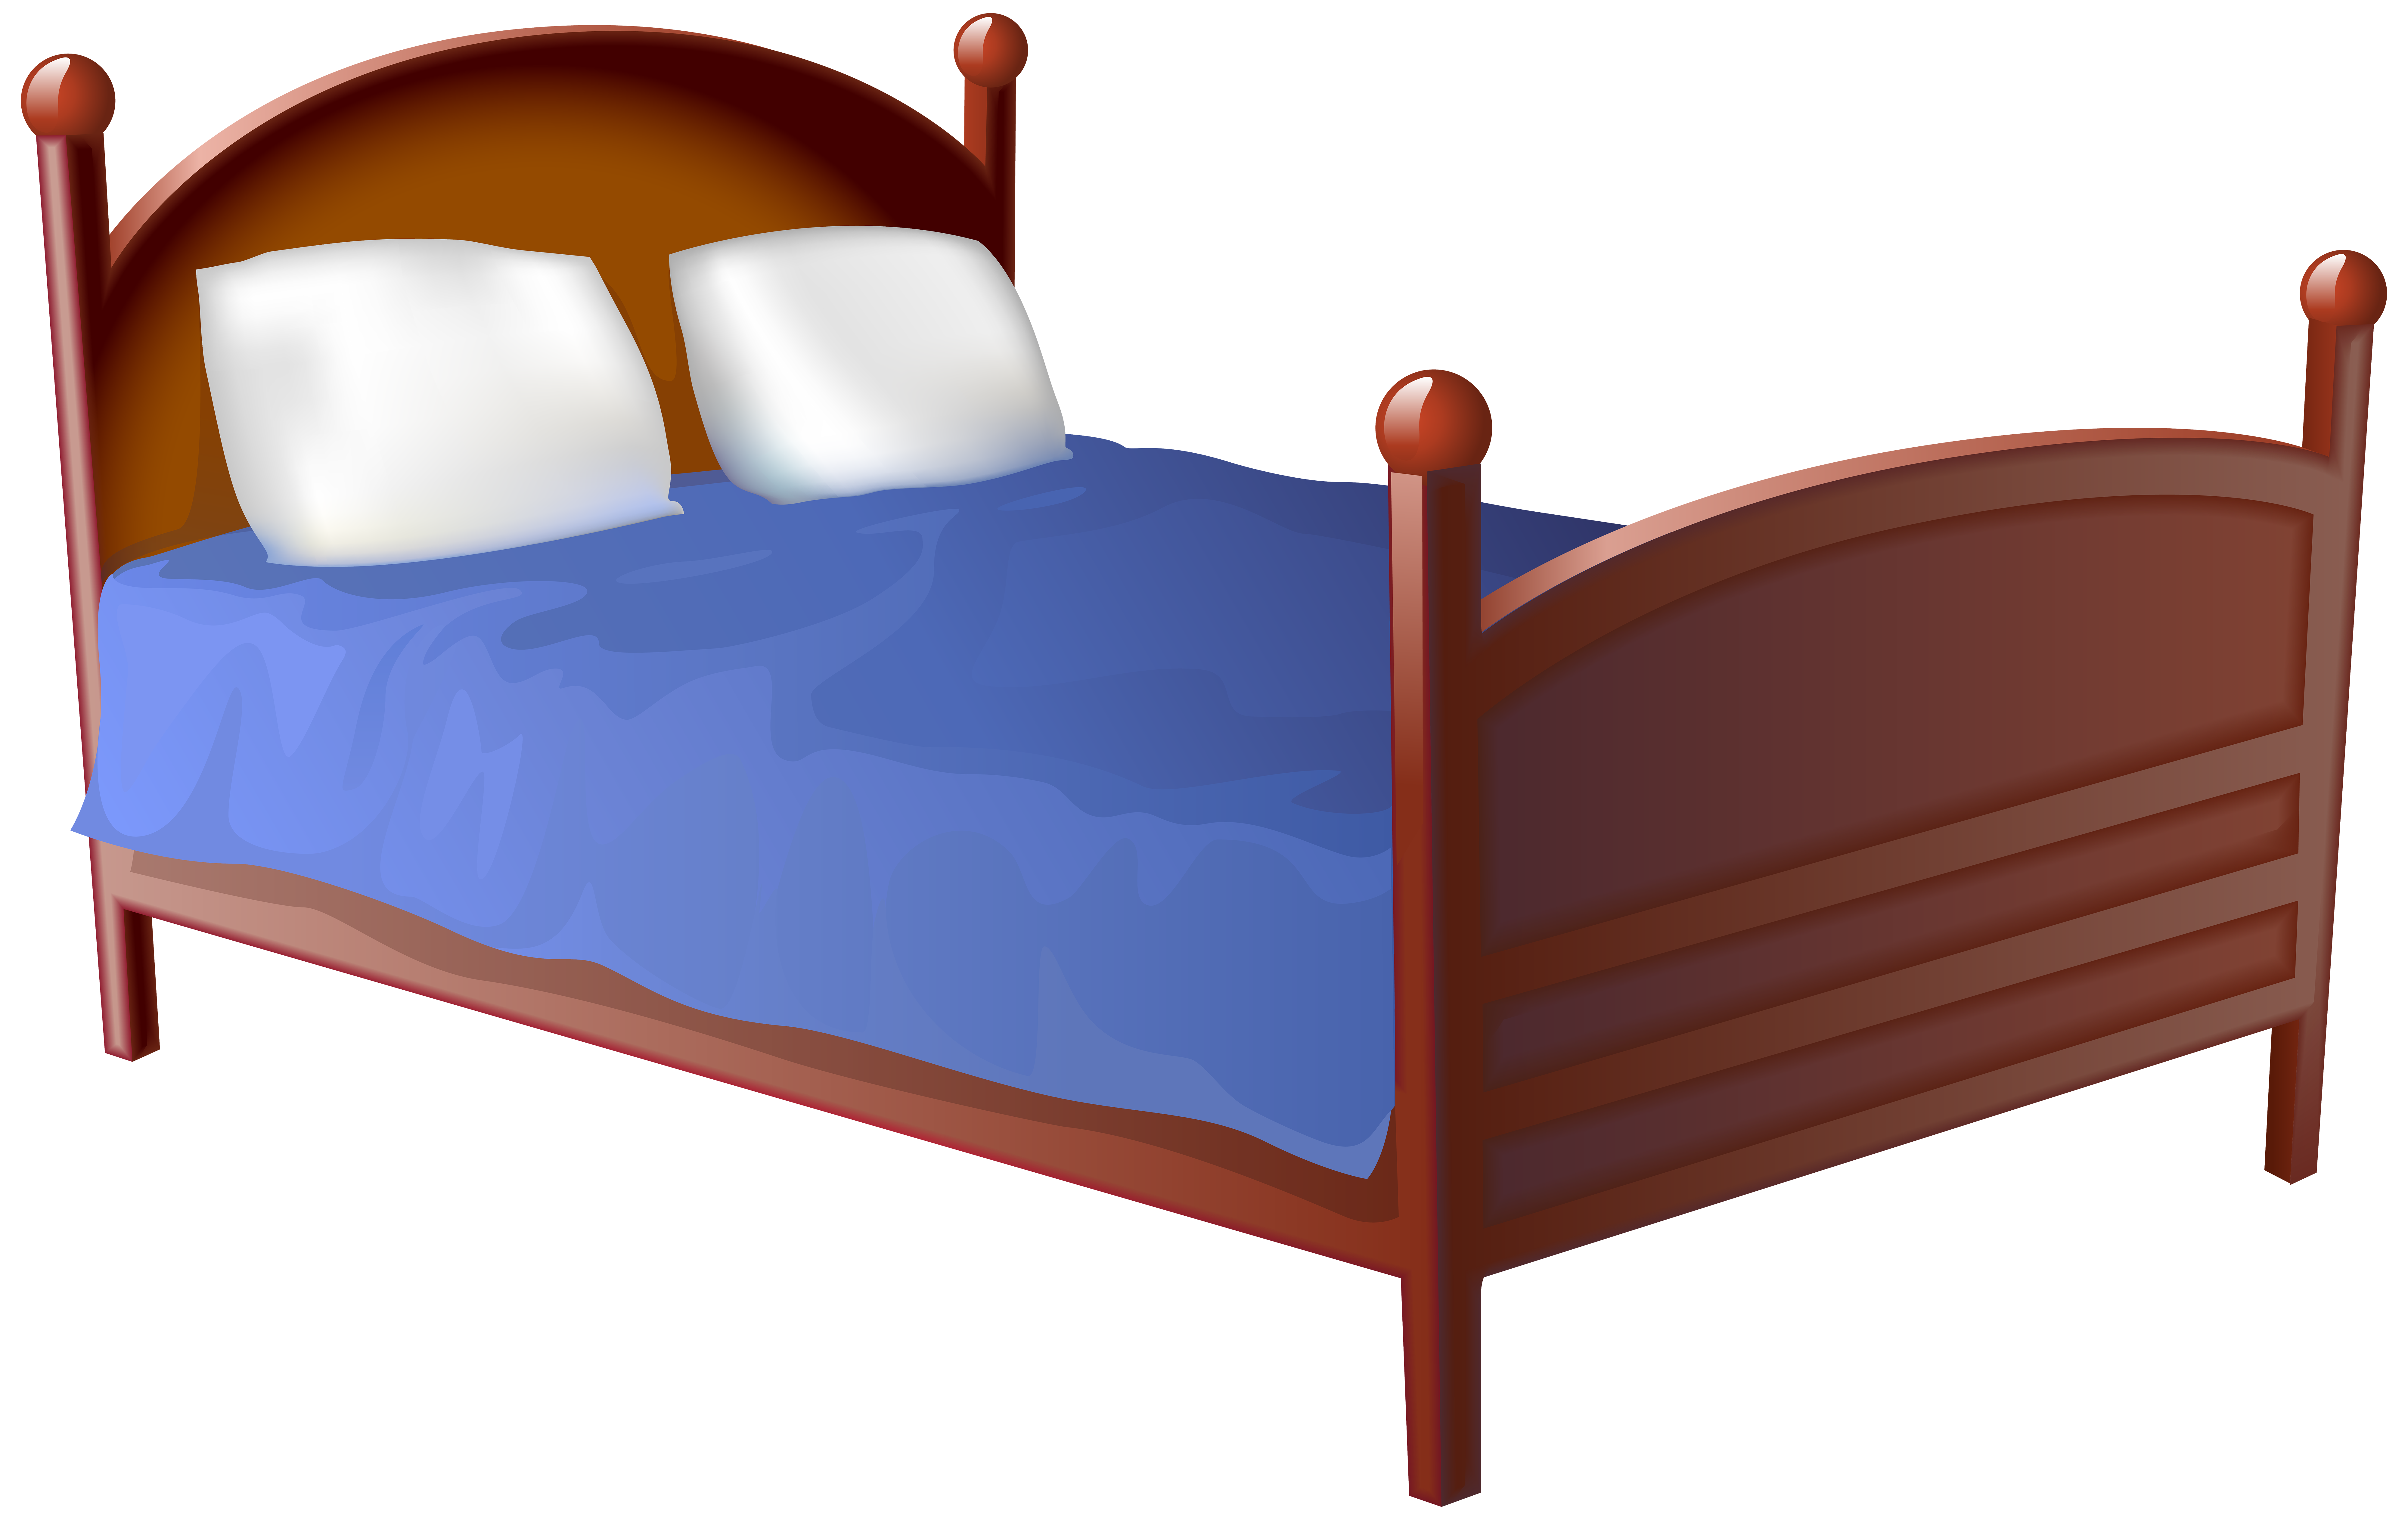 Clipart bed pictures image library Bed Transparent PNG Clip Art Image | Gallery Yopriceville - High ... image library